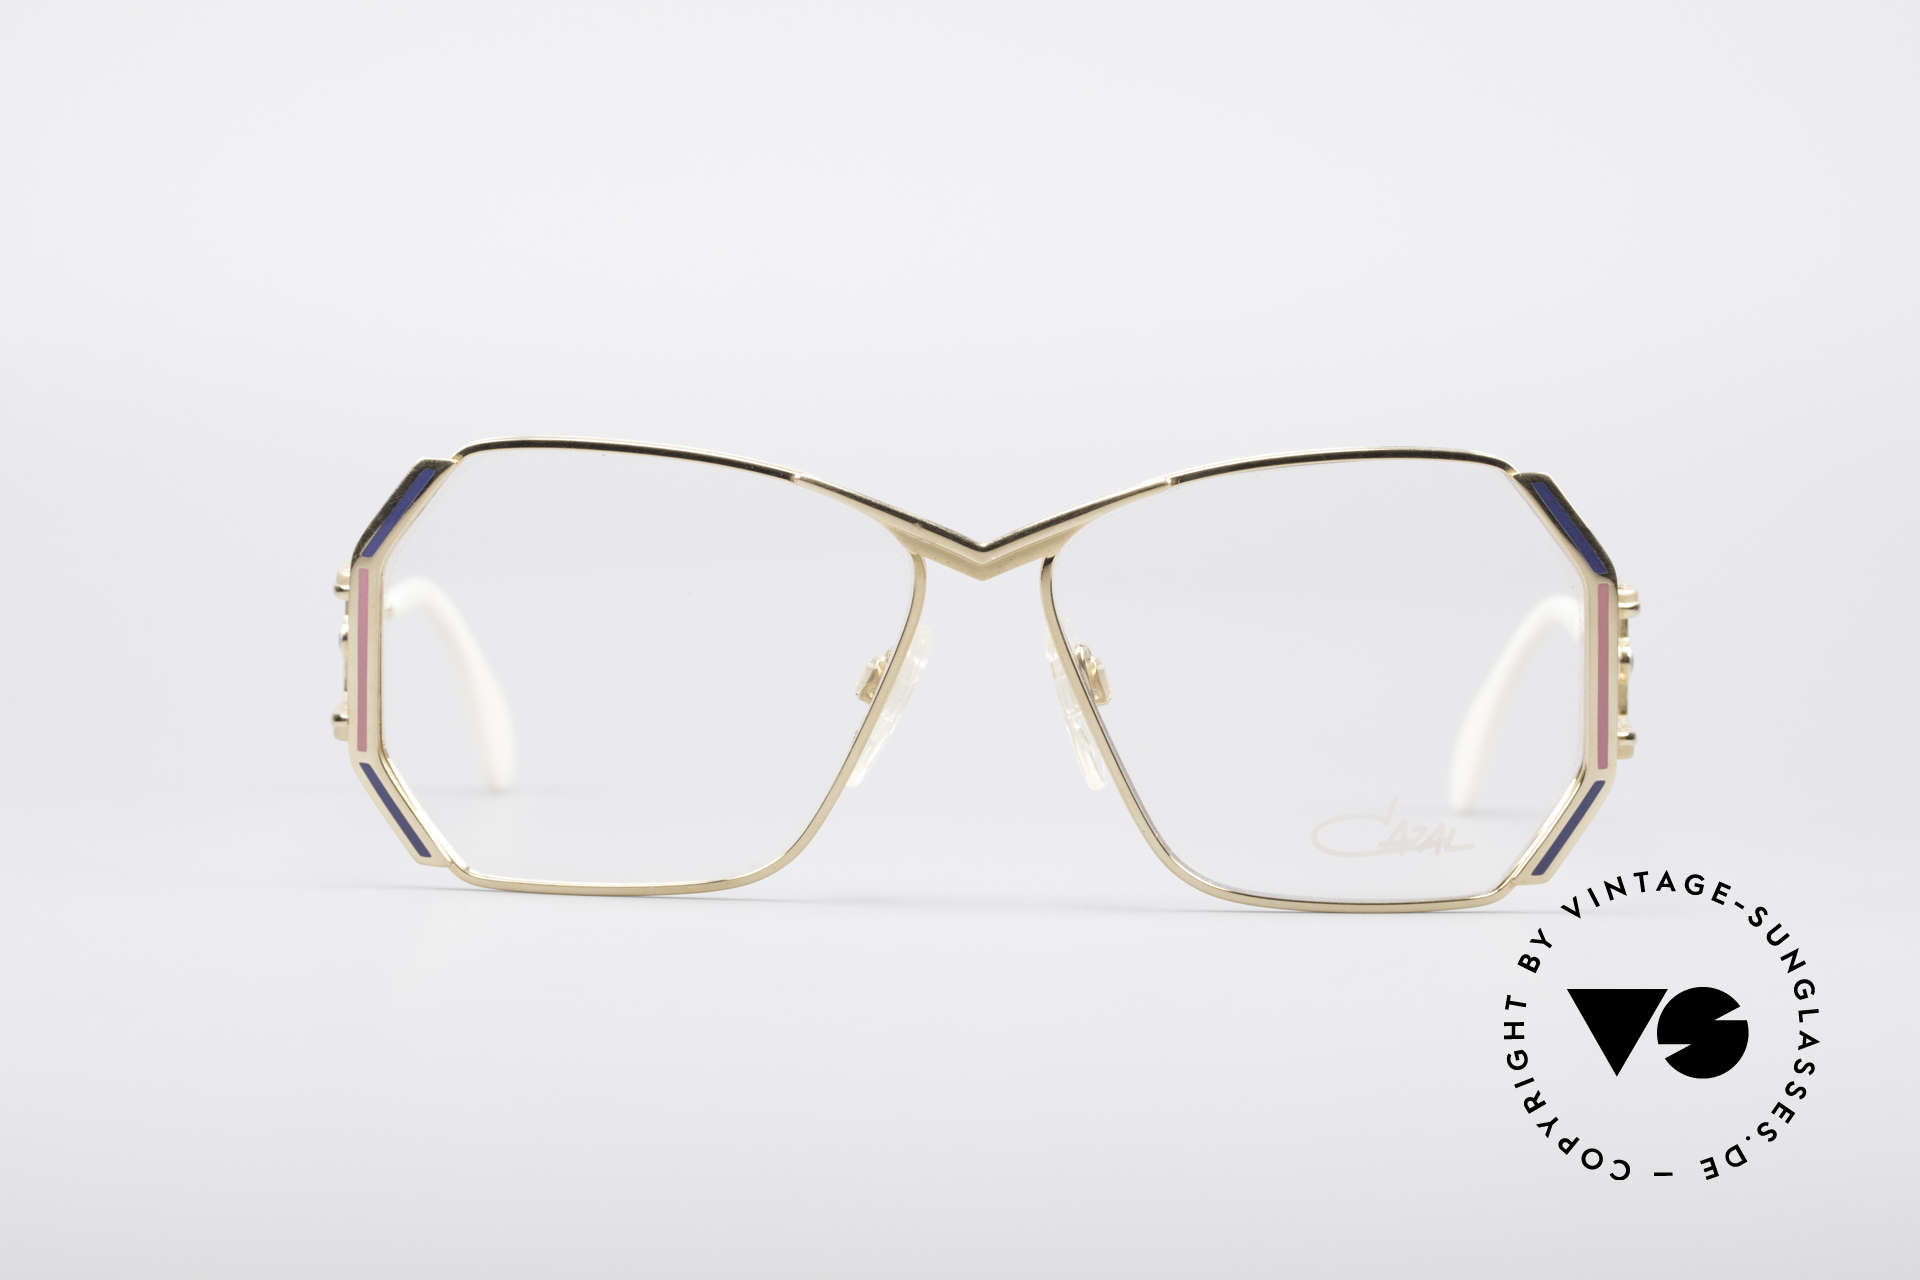 Cazal 225 80's Old School HipHop Frame, handmade in Passau; Bavaria (late 1980's/early 1990's), Made for Women